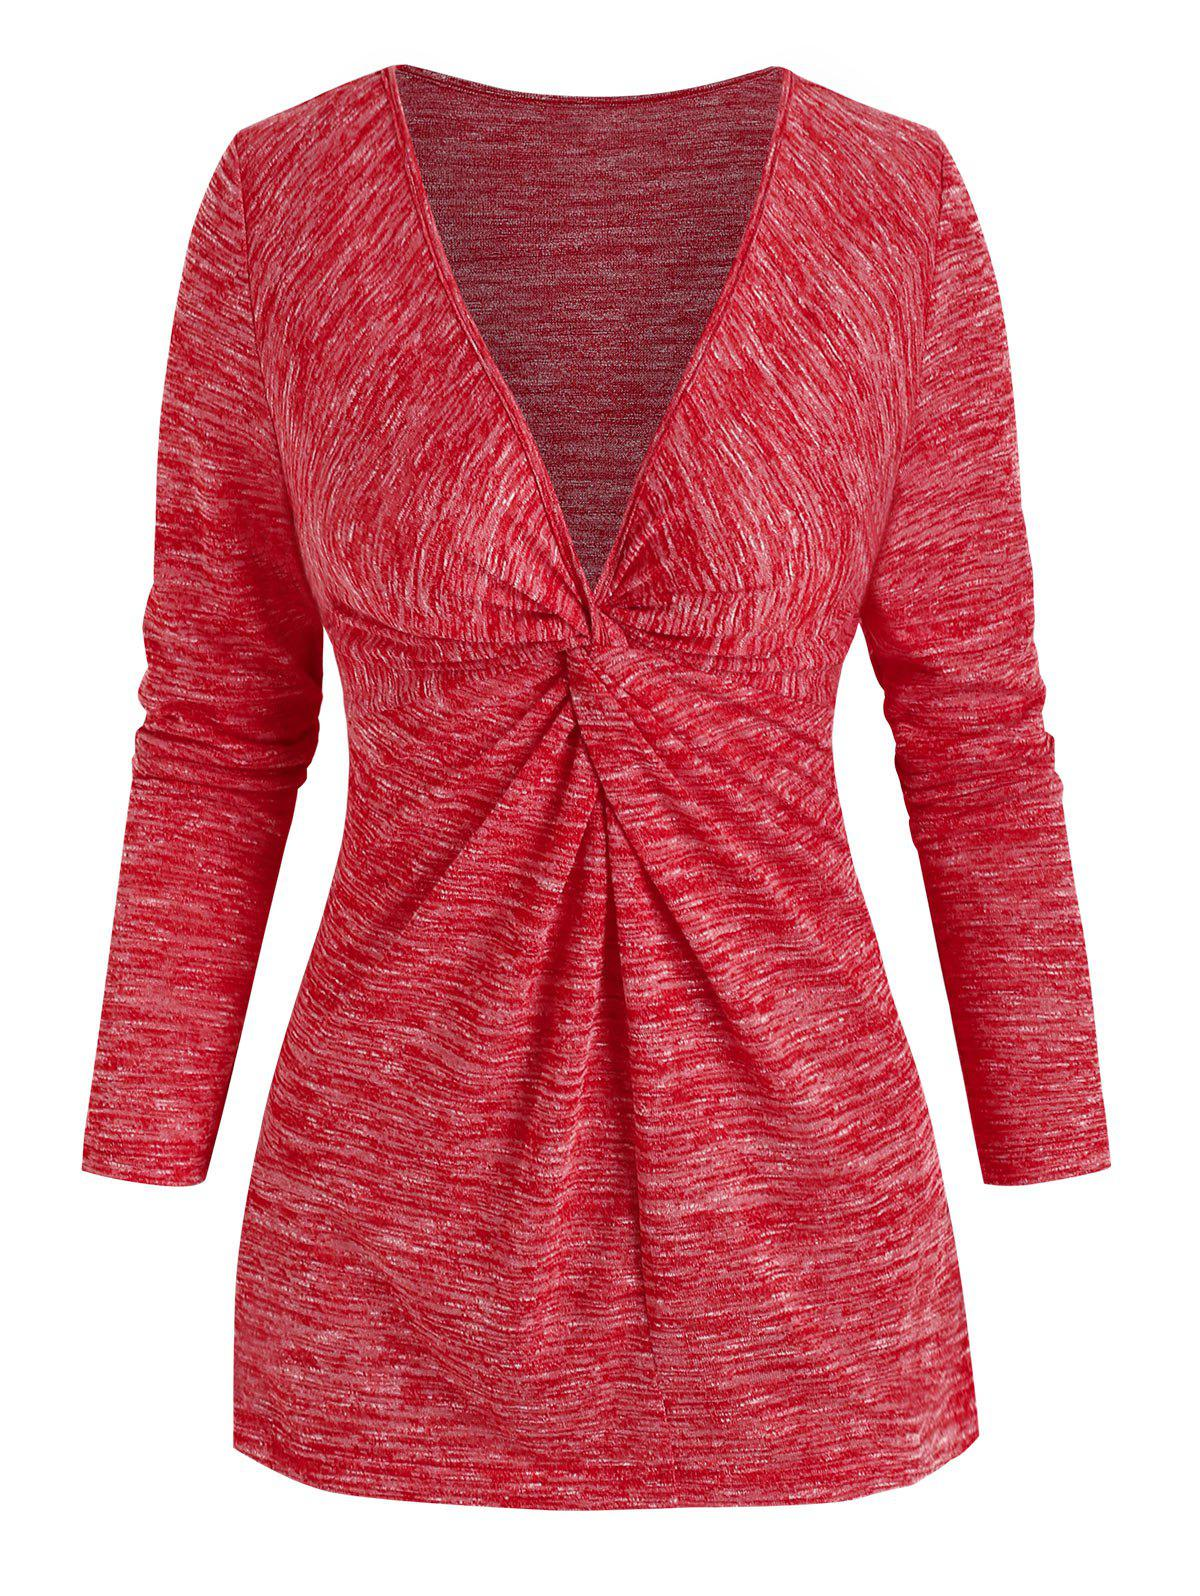 Marled Front Knot Plunging Collar T Shirt - RED XL